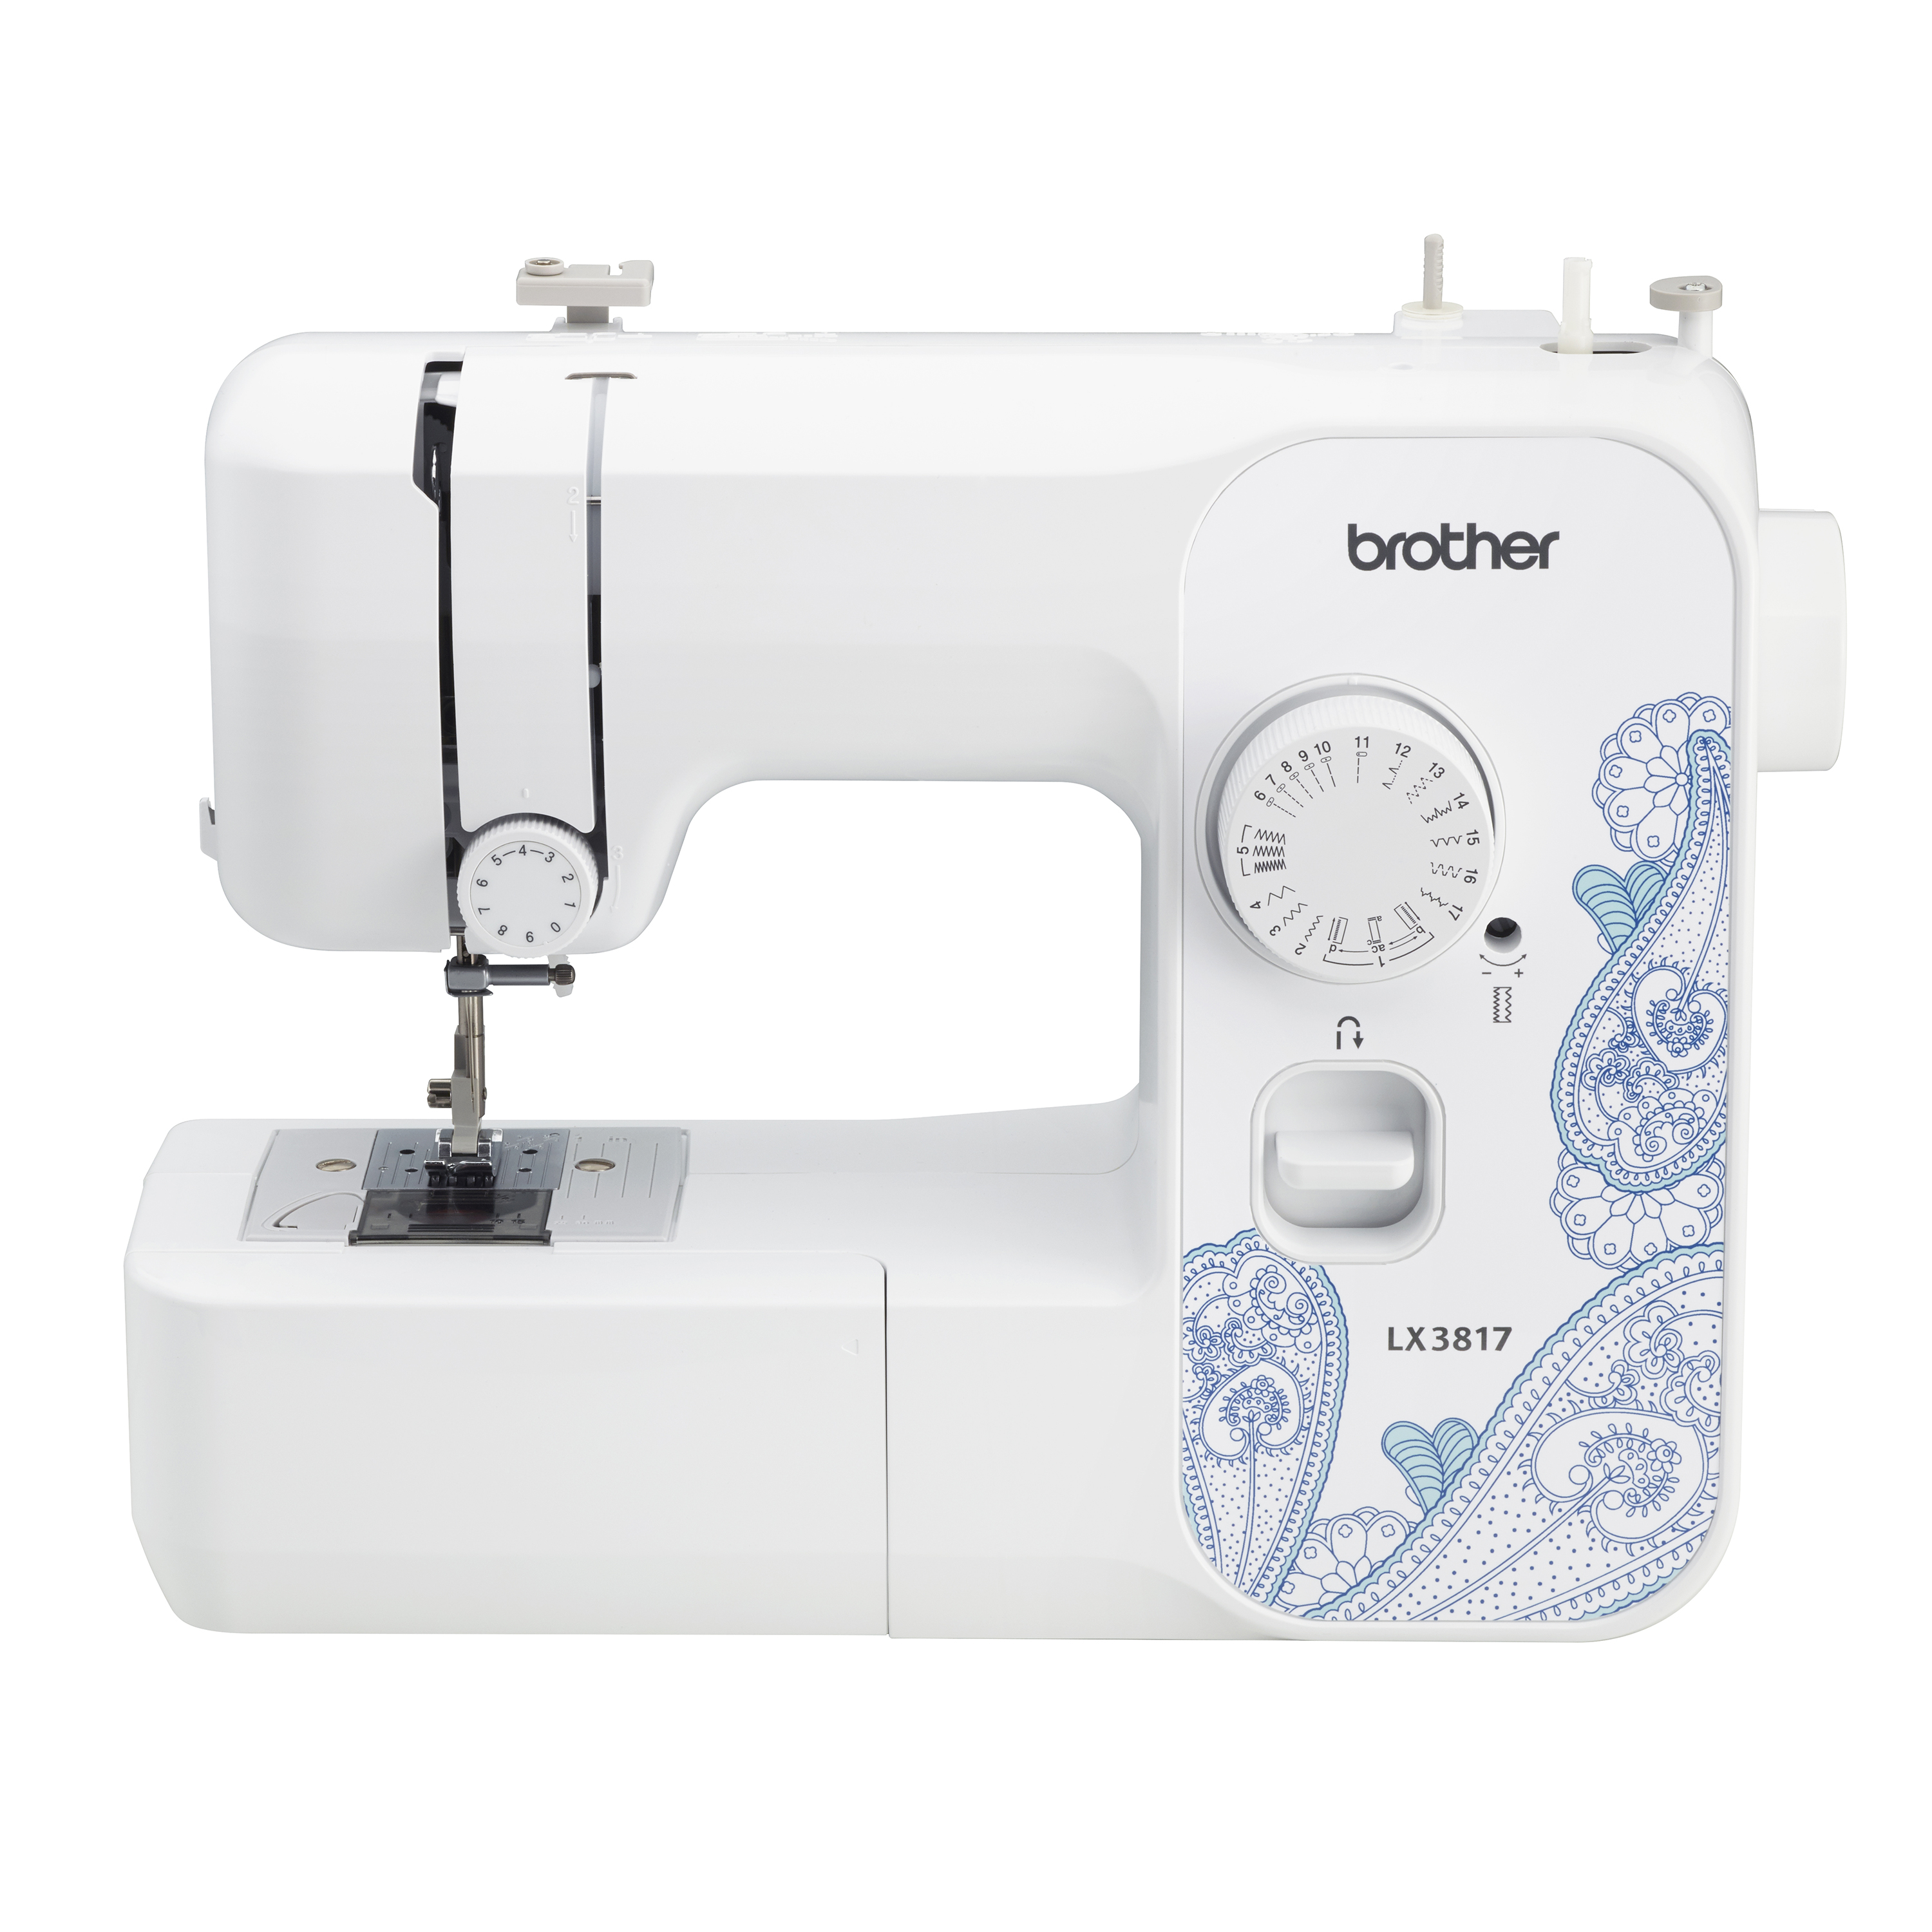 Brother sewing machine walmart